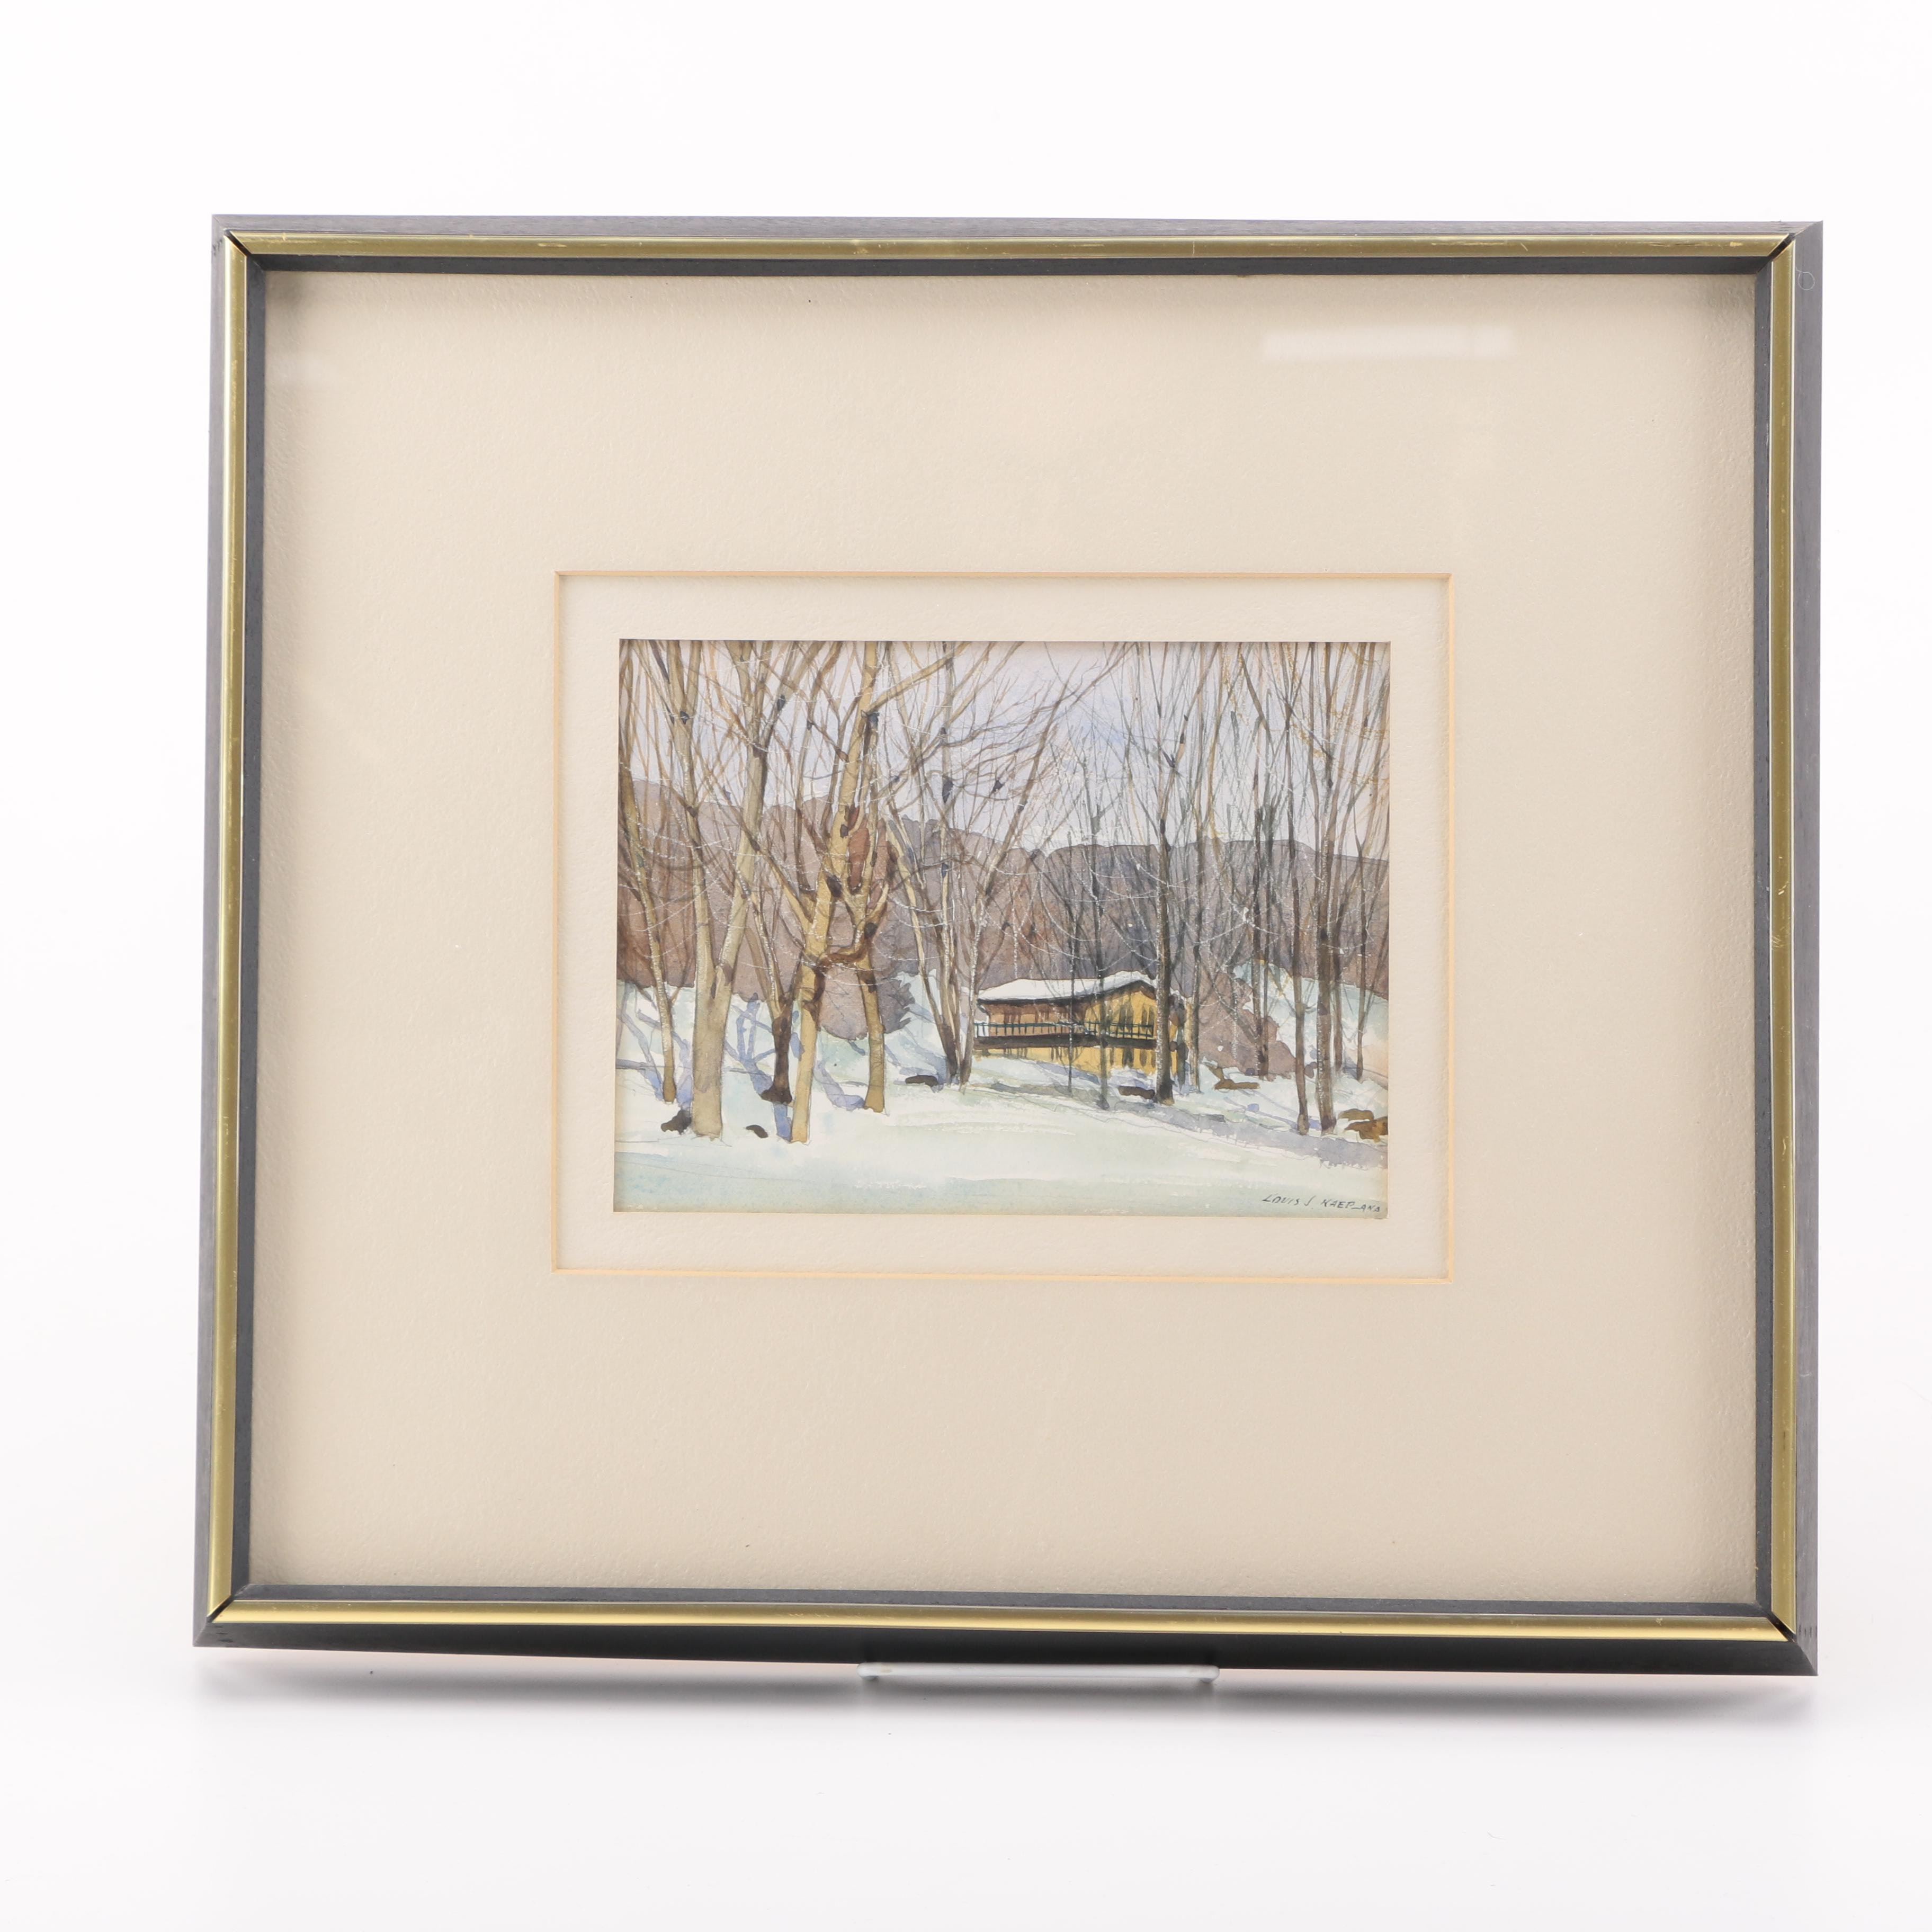 Louis J. Kaep Watercolor Painting of Yellow House in Winter Landscape